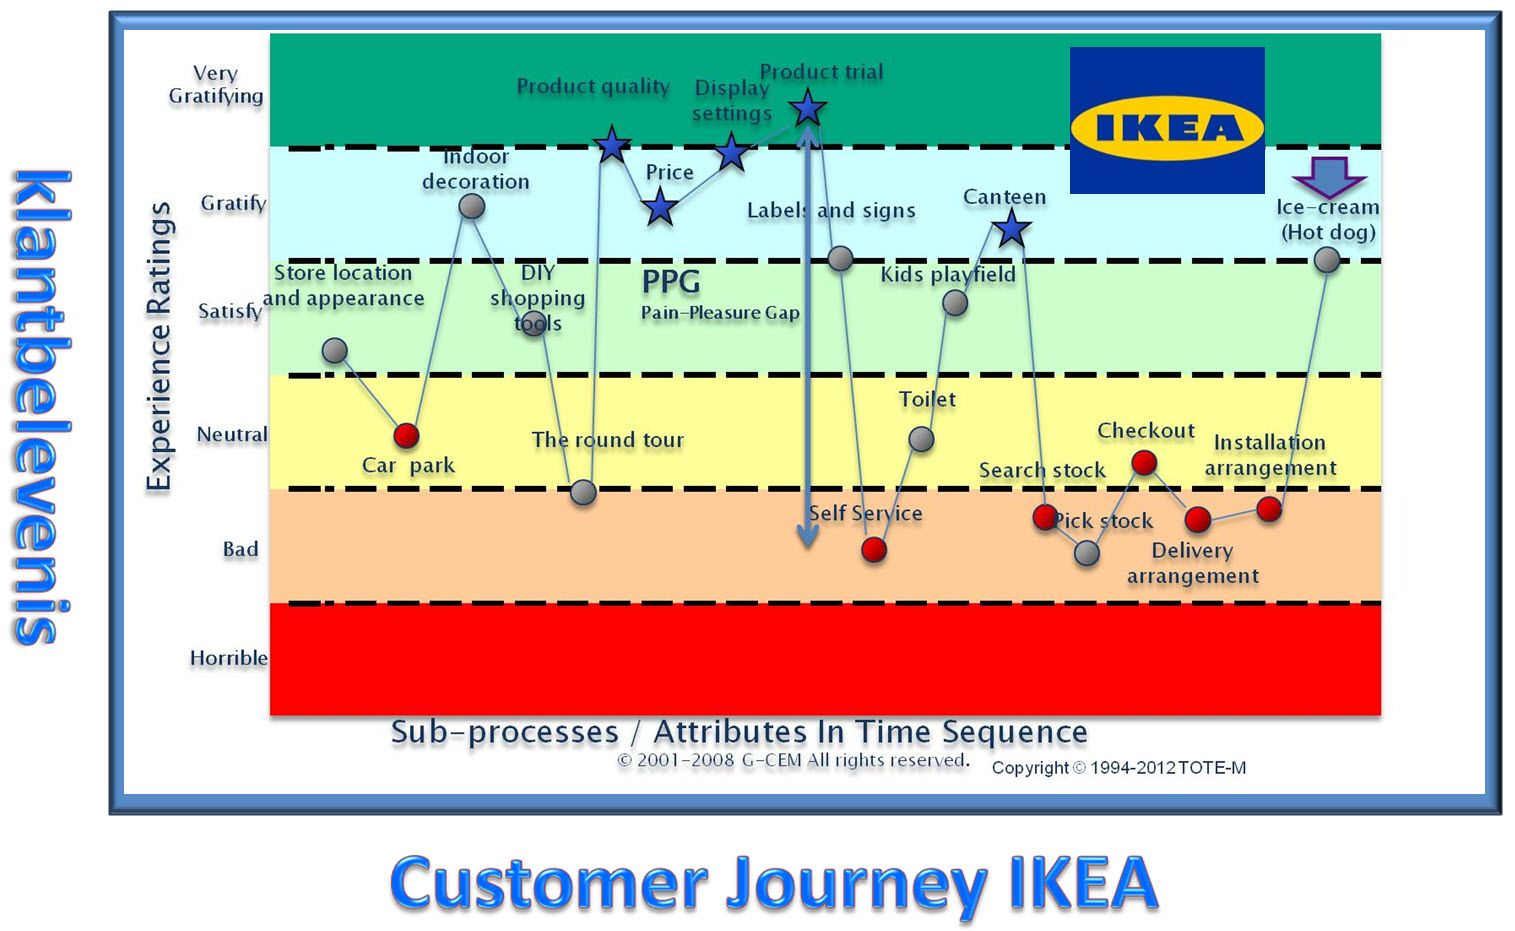 Old Customer Journey Map from IKEA